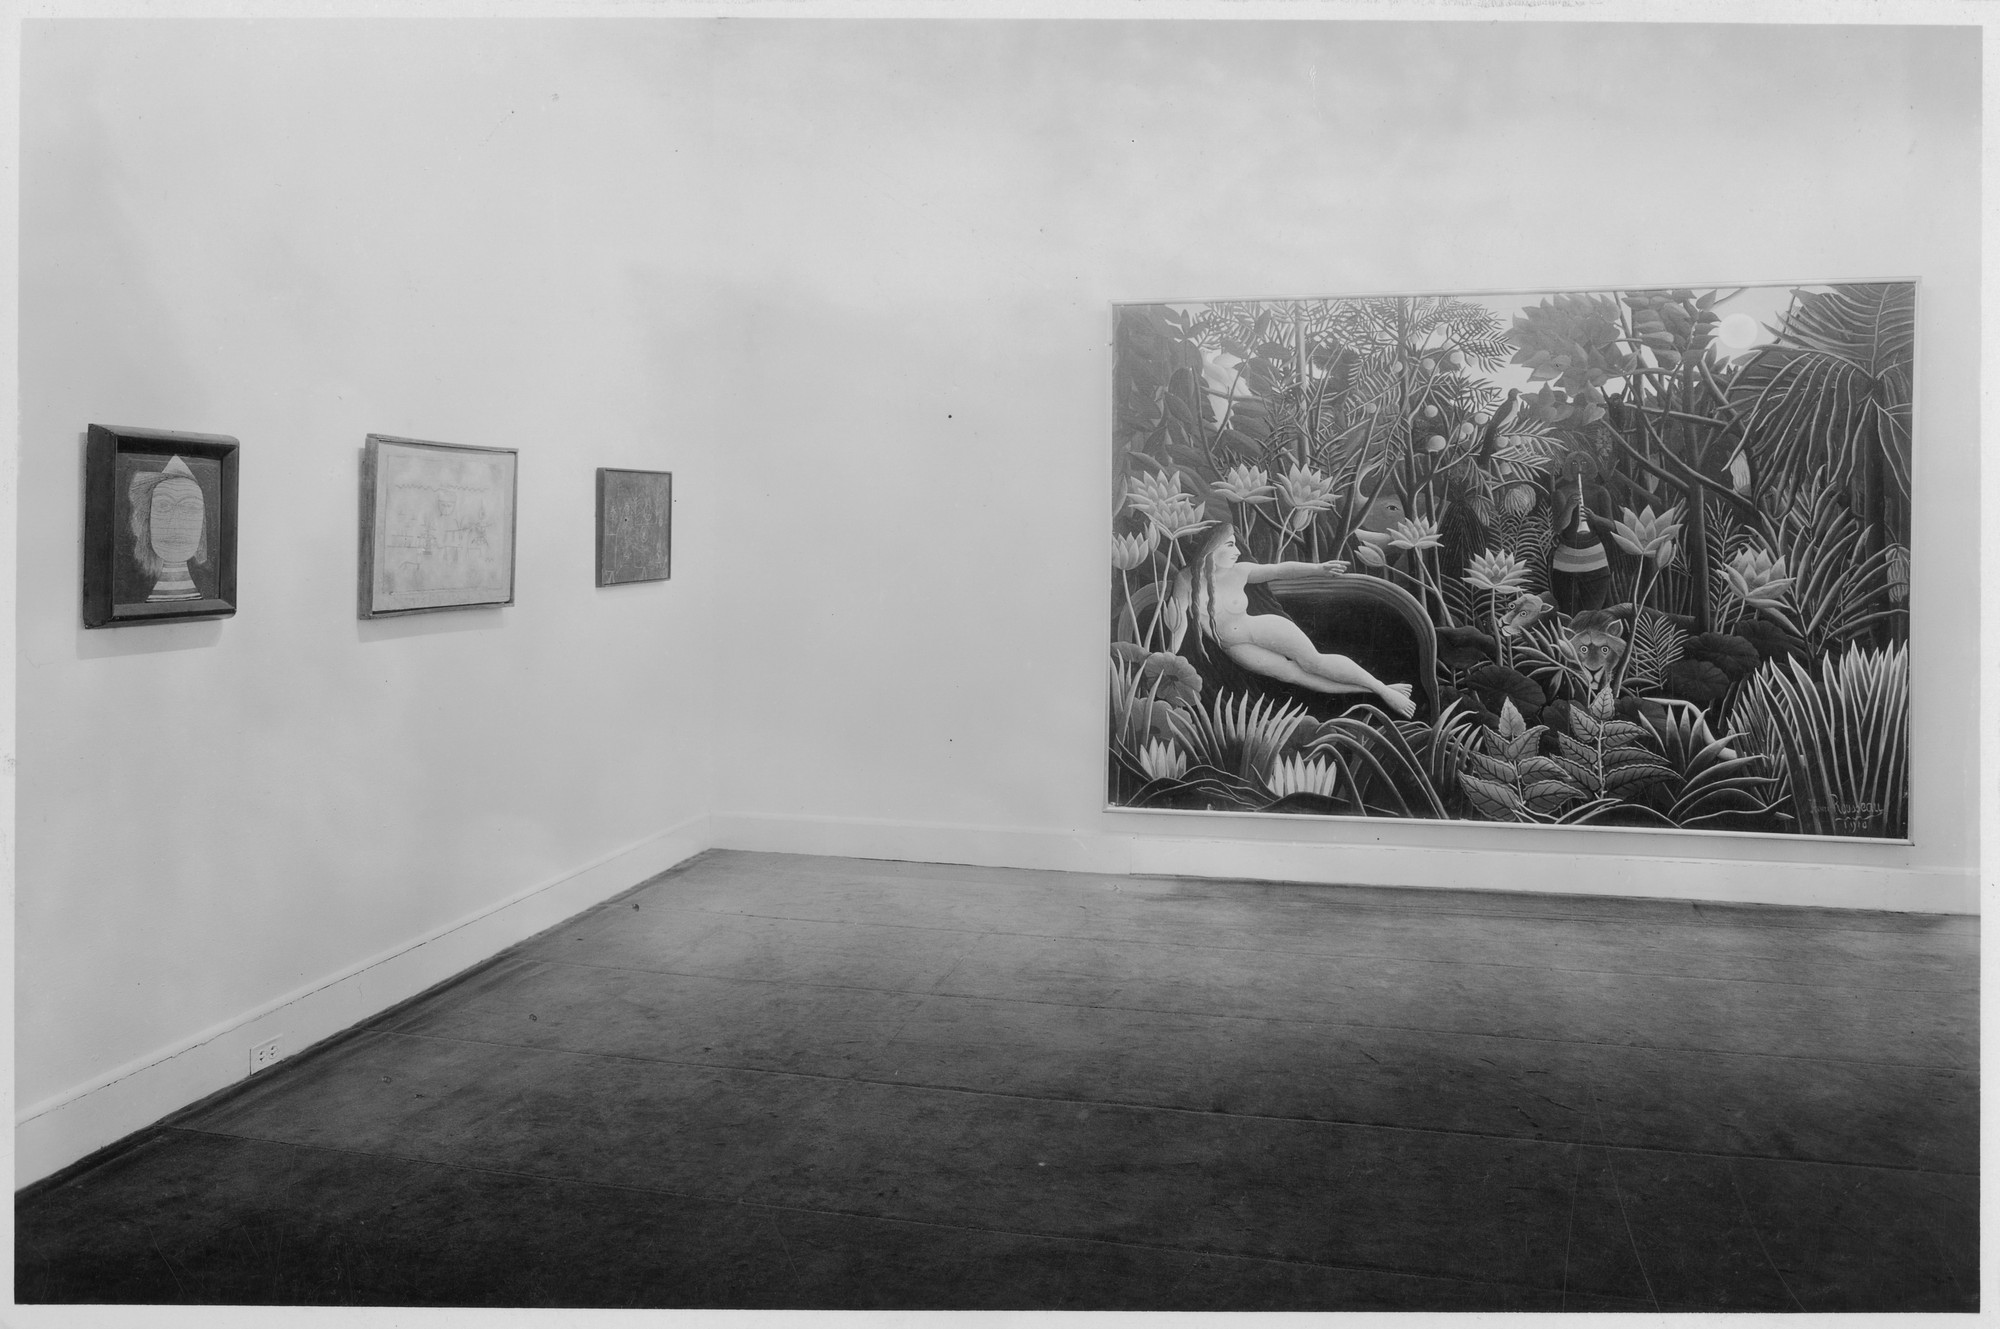 "Installation view of the exhibition, ""Summer Exhibition:  The Museum Collection and a Private Collection on Loan."" June 4, 1935–September 24, 1935. Photographic Archive. The Museum of Modern Art Archives, New York. IN41.1. Photograph by Soichi Sunami."